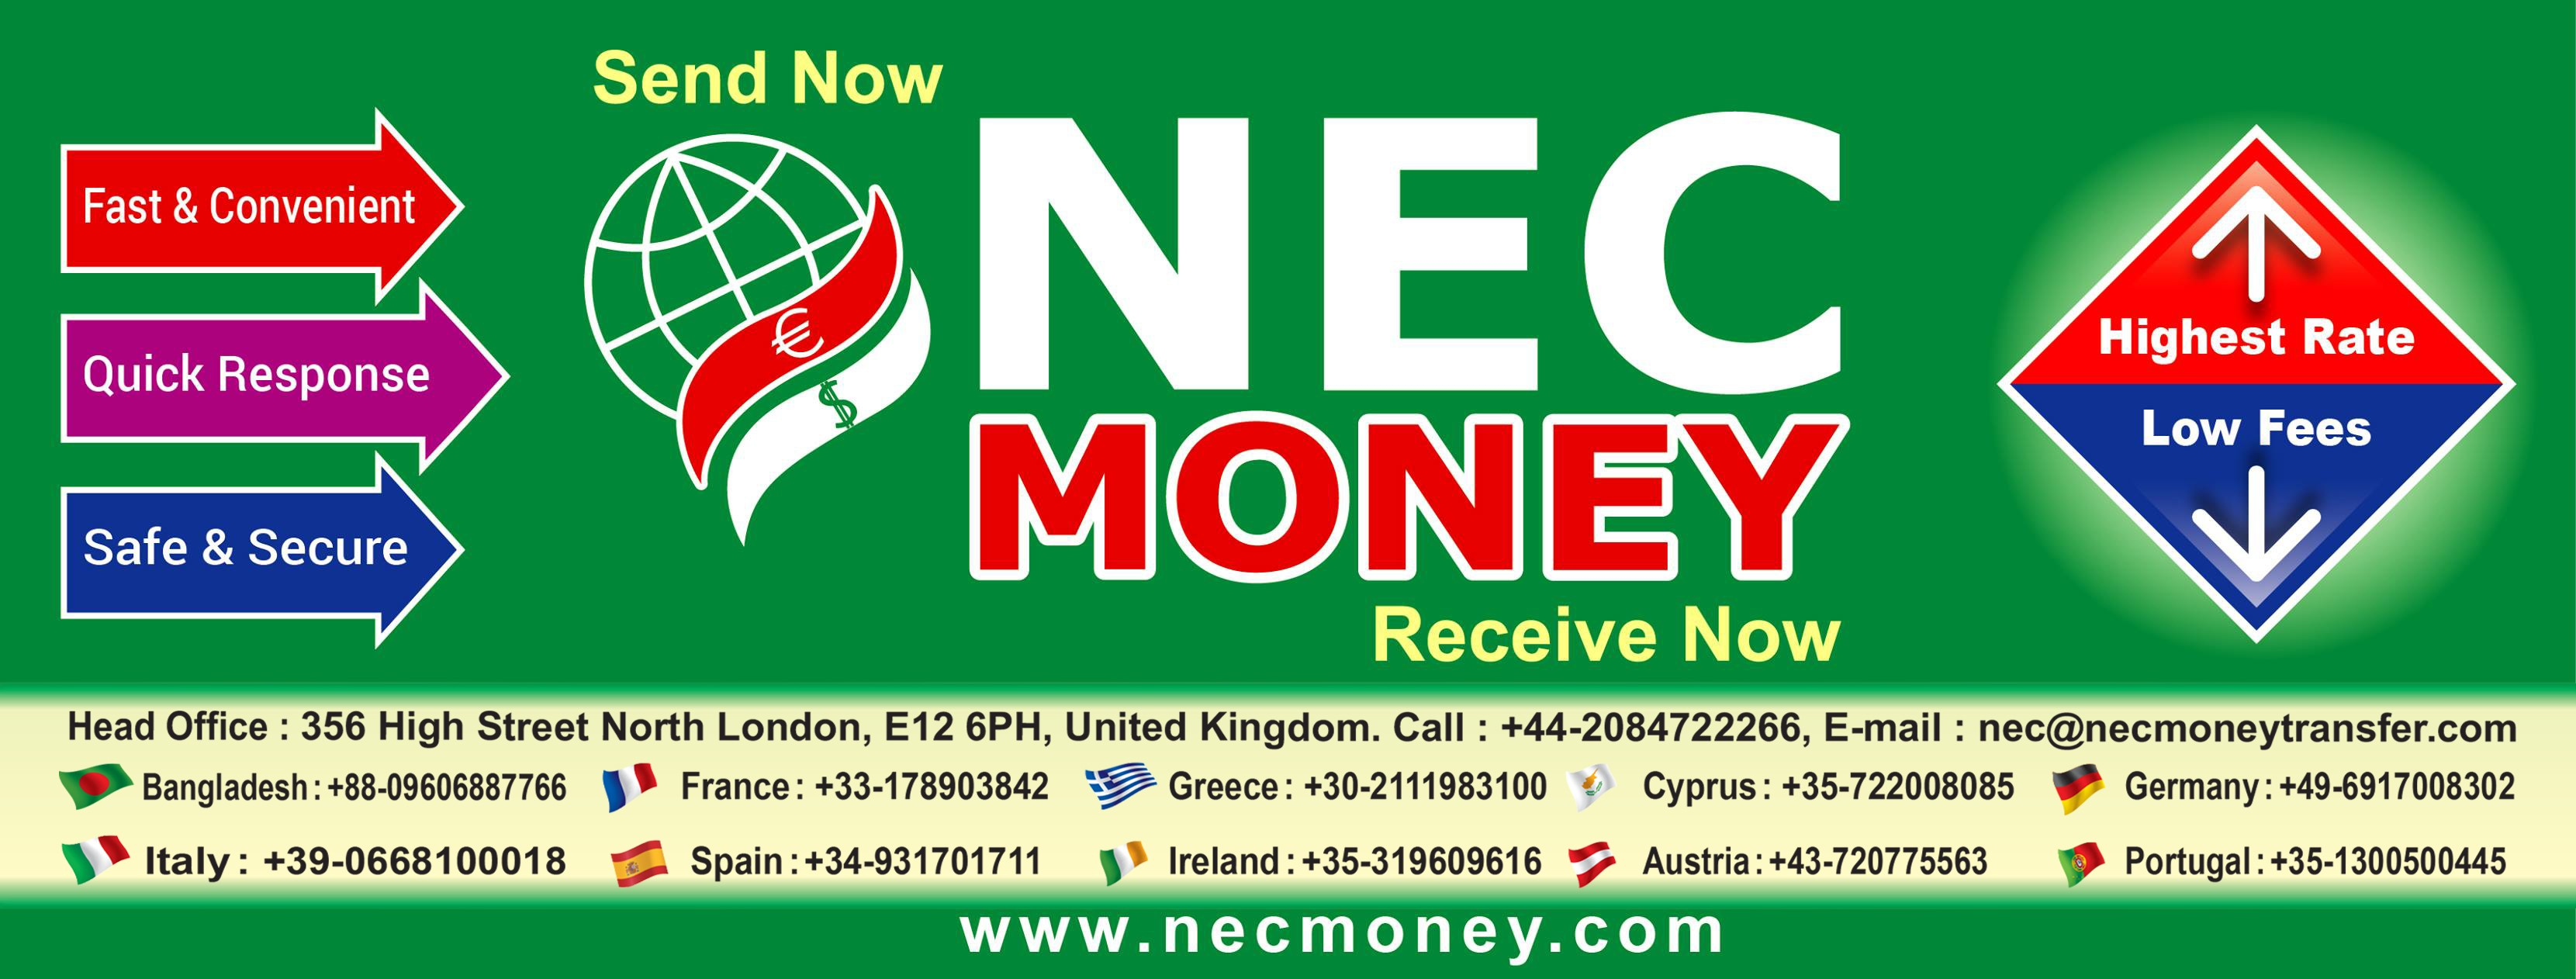 Nec Money Transfer Limited Cover Image